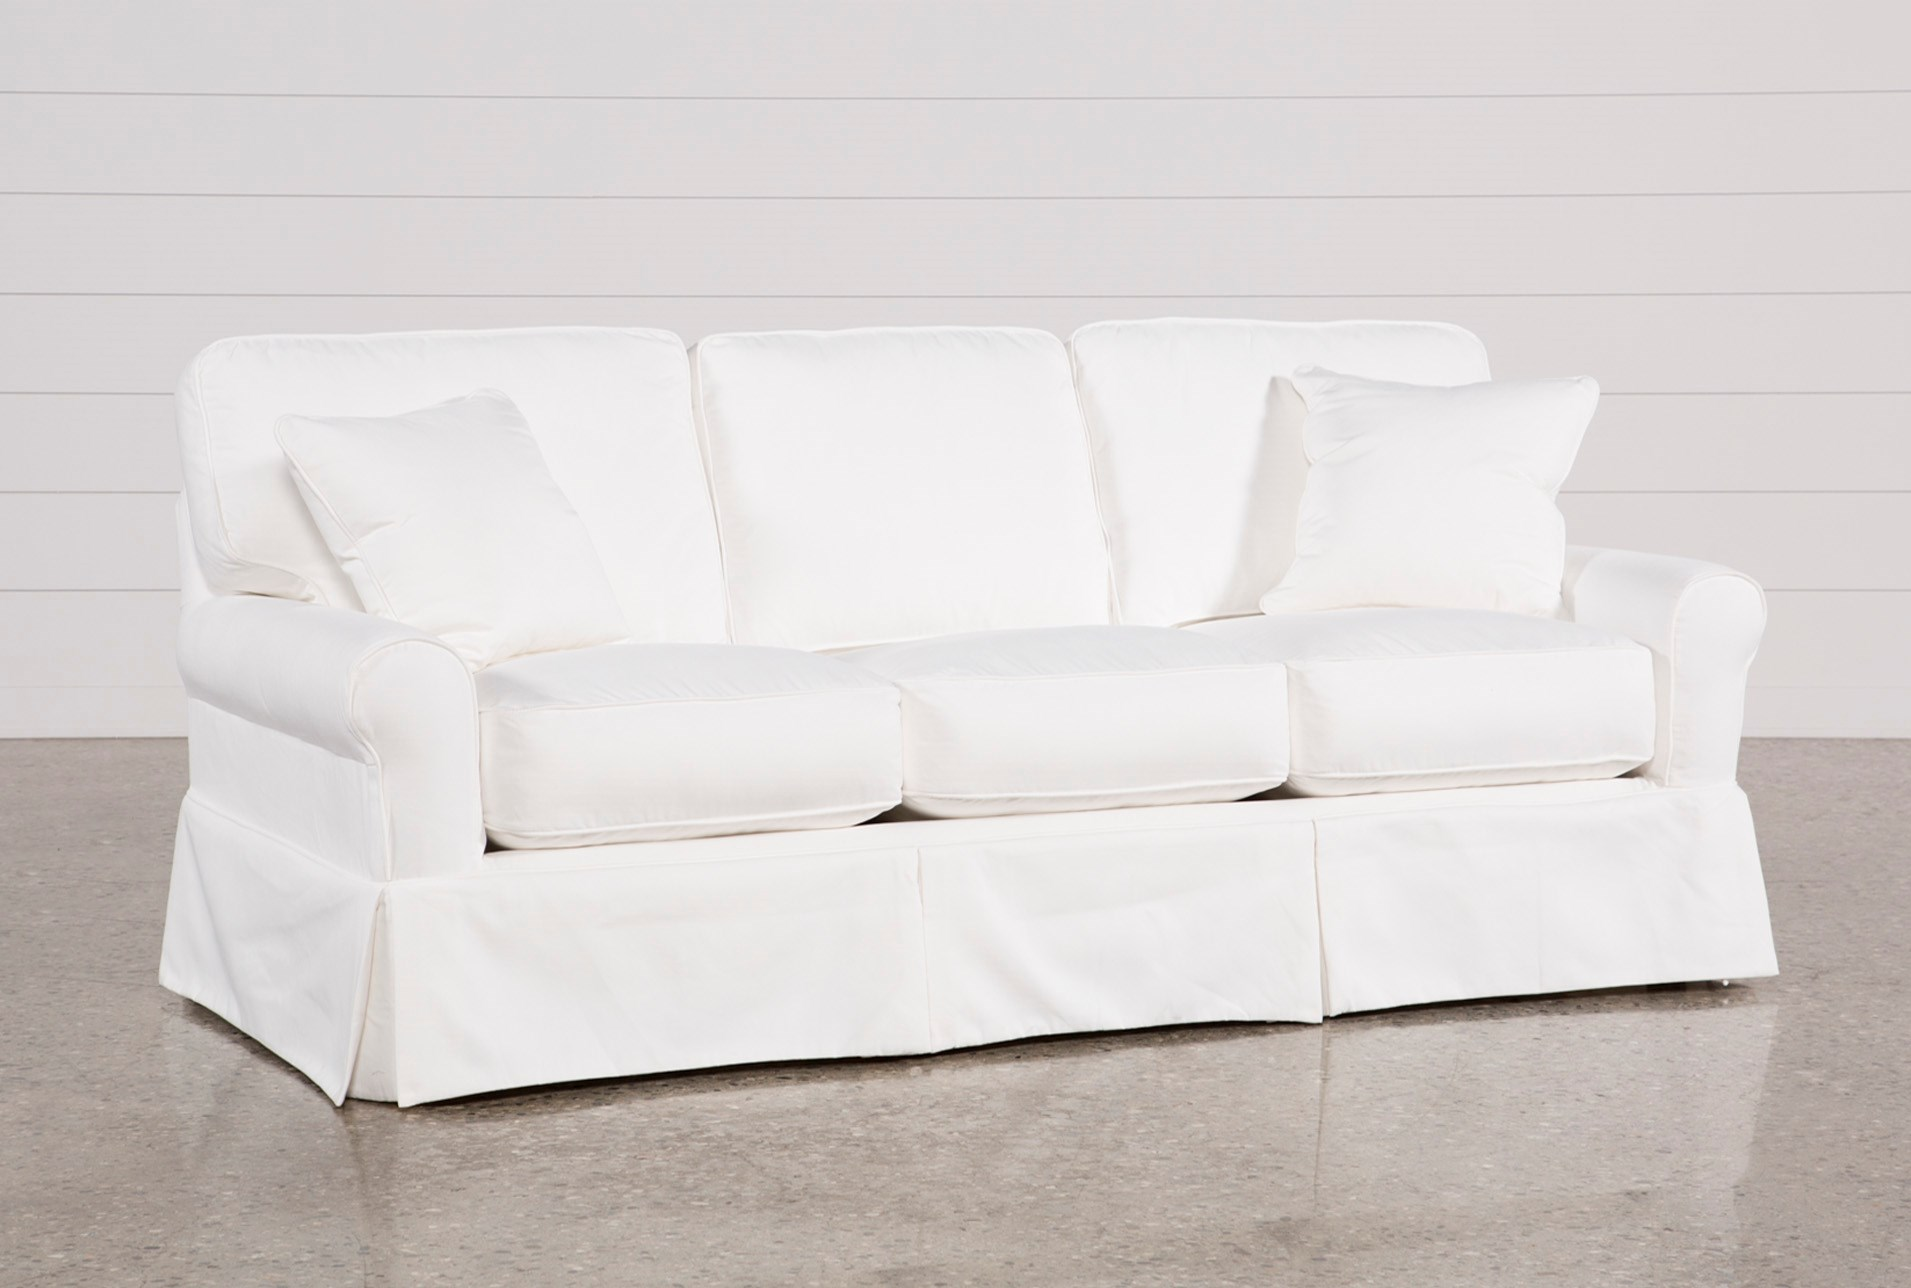 Carlyle Slipcovered Sofa Qty 1 Has Been Successfully Added To Your Cart